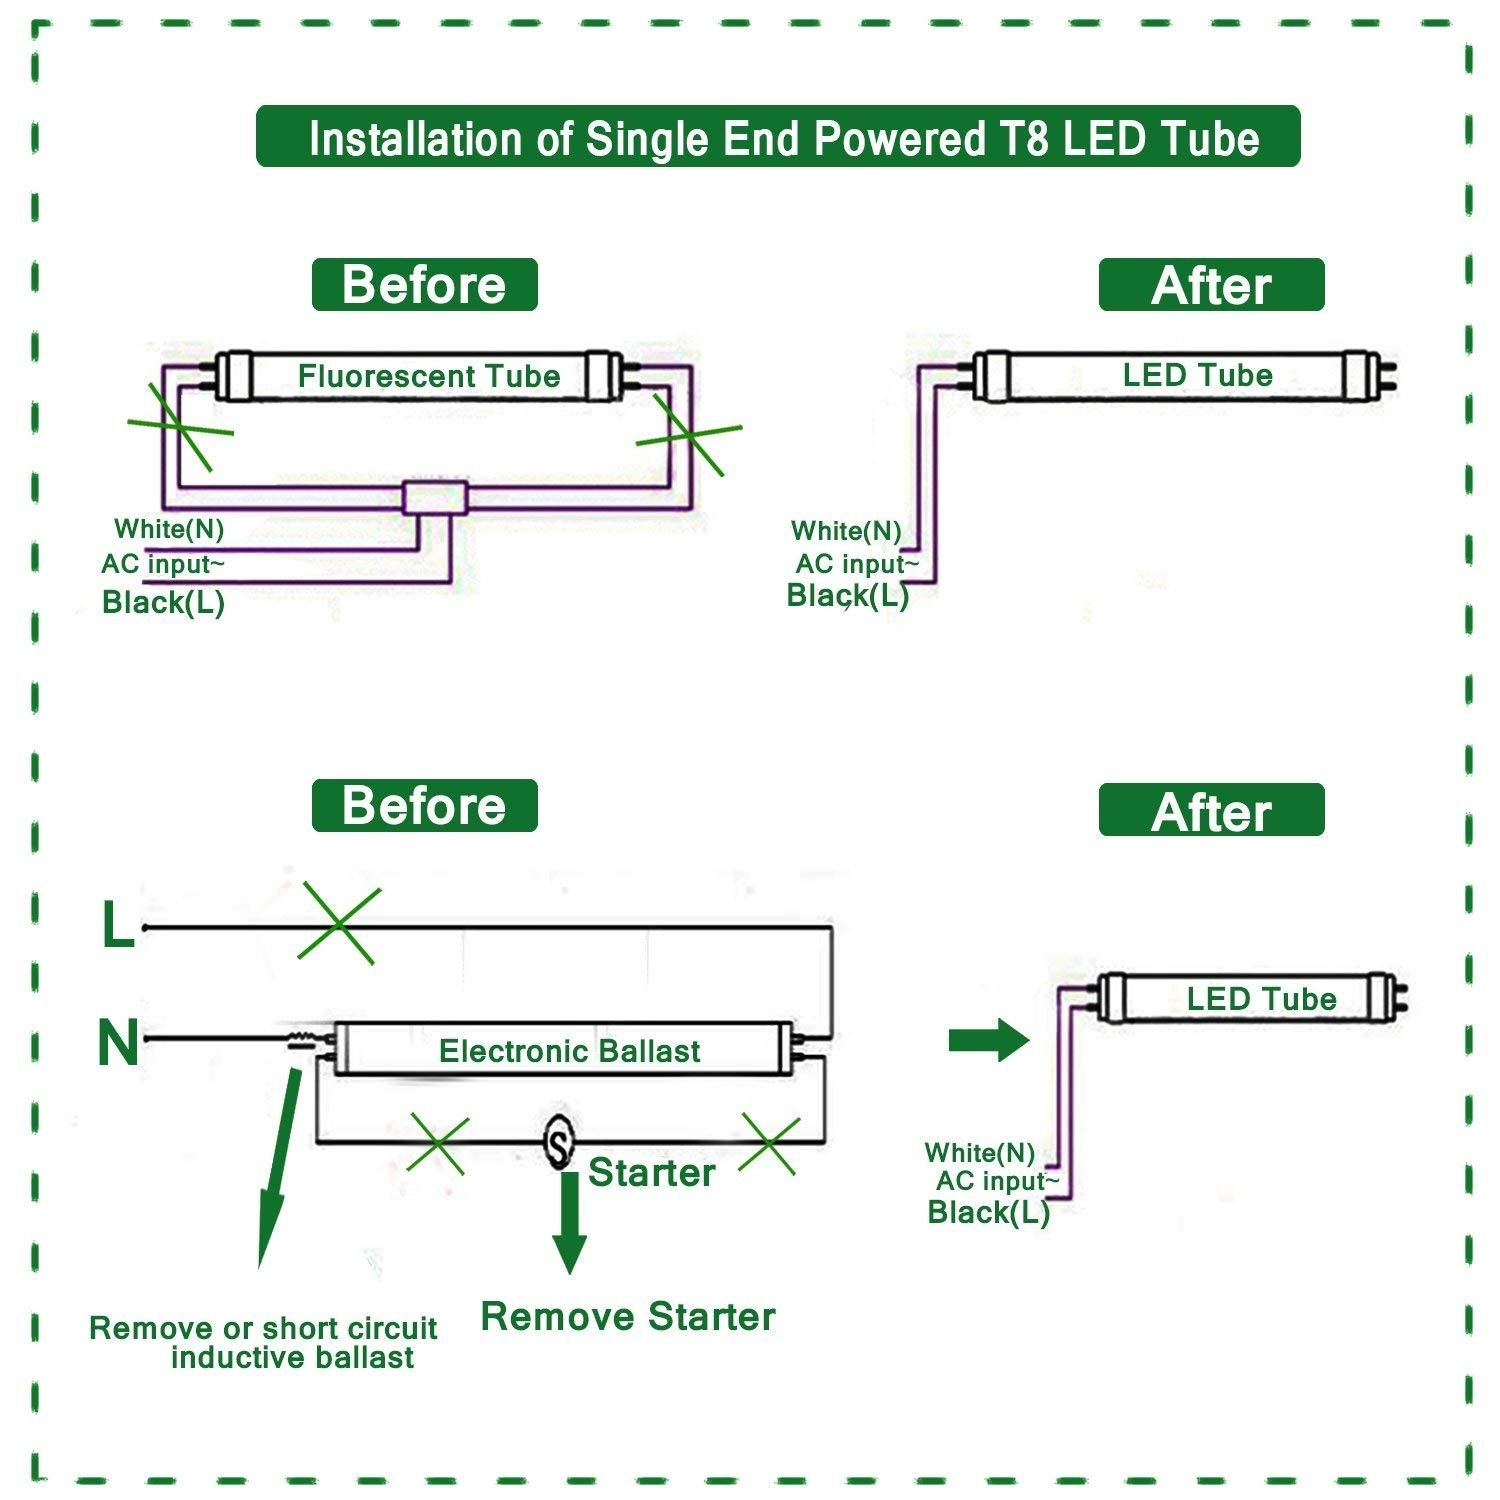 Tube Wiring Diagram Http Bookingritzcarlton Info Tube Wiring Diagram Led Tubes Led Fluorescent Tube Fluorescent Tube